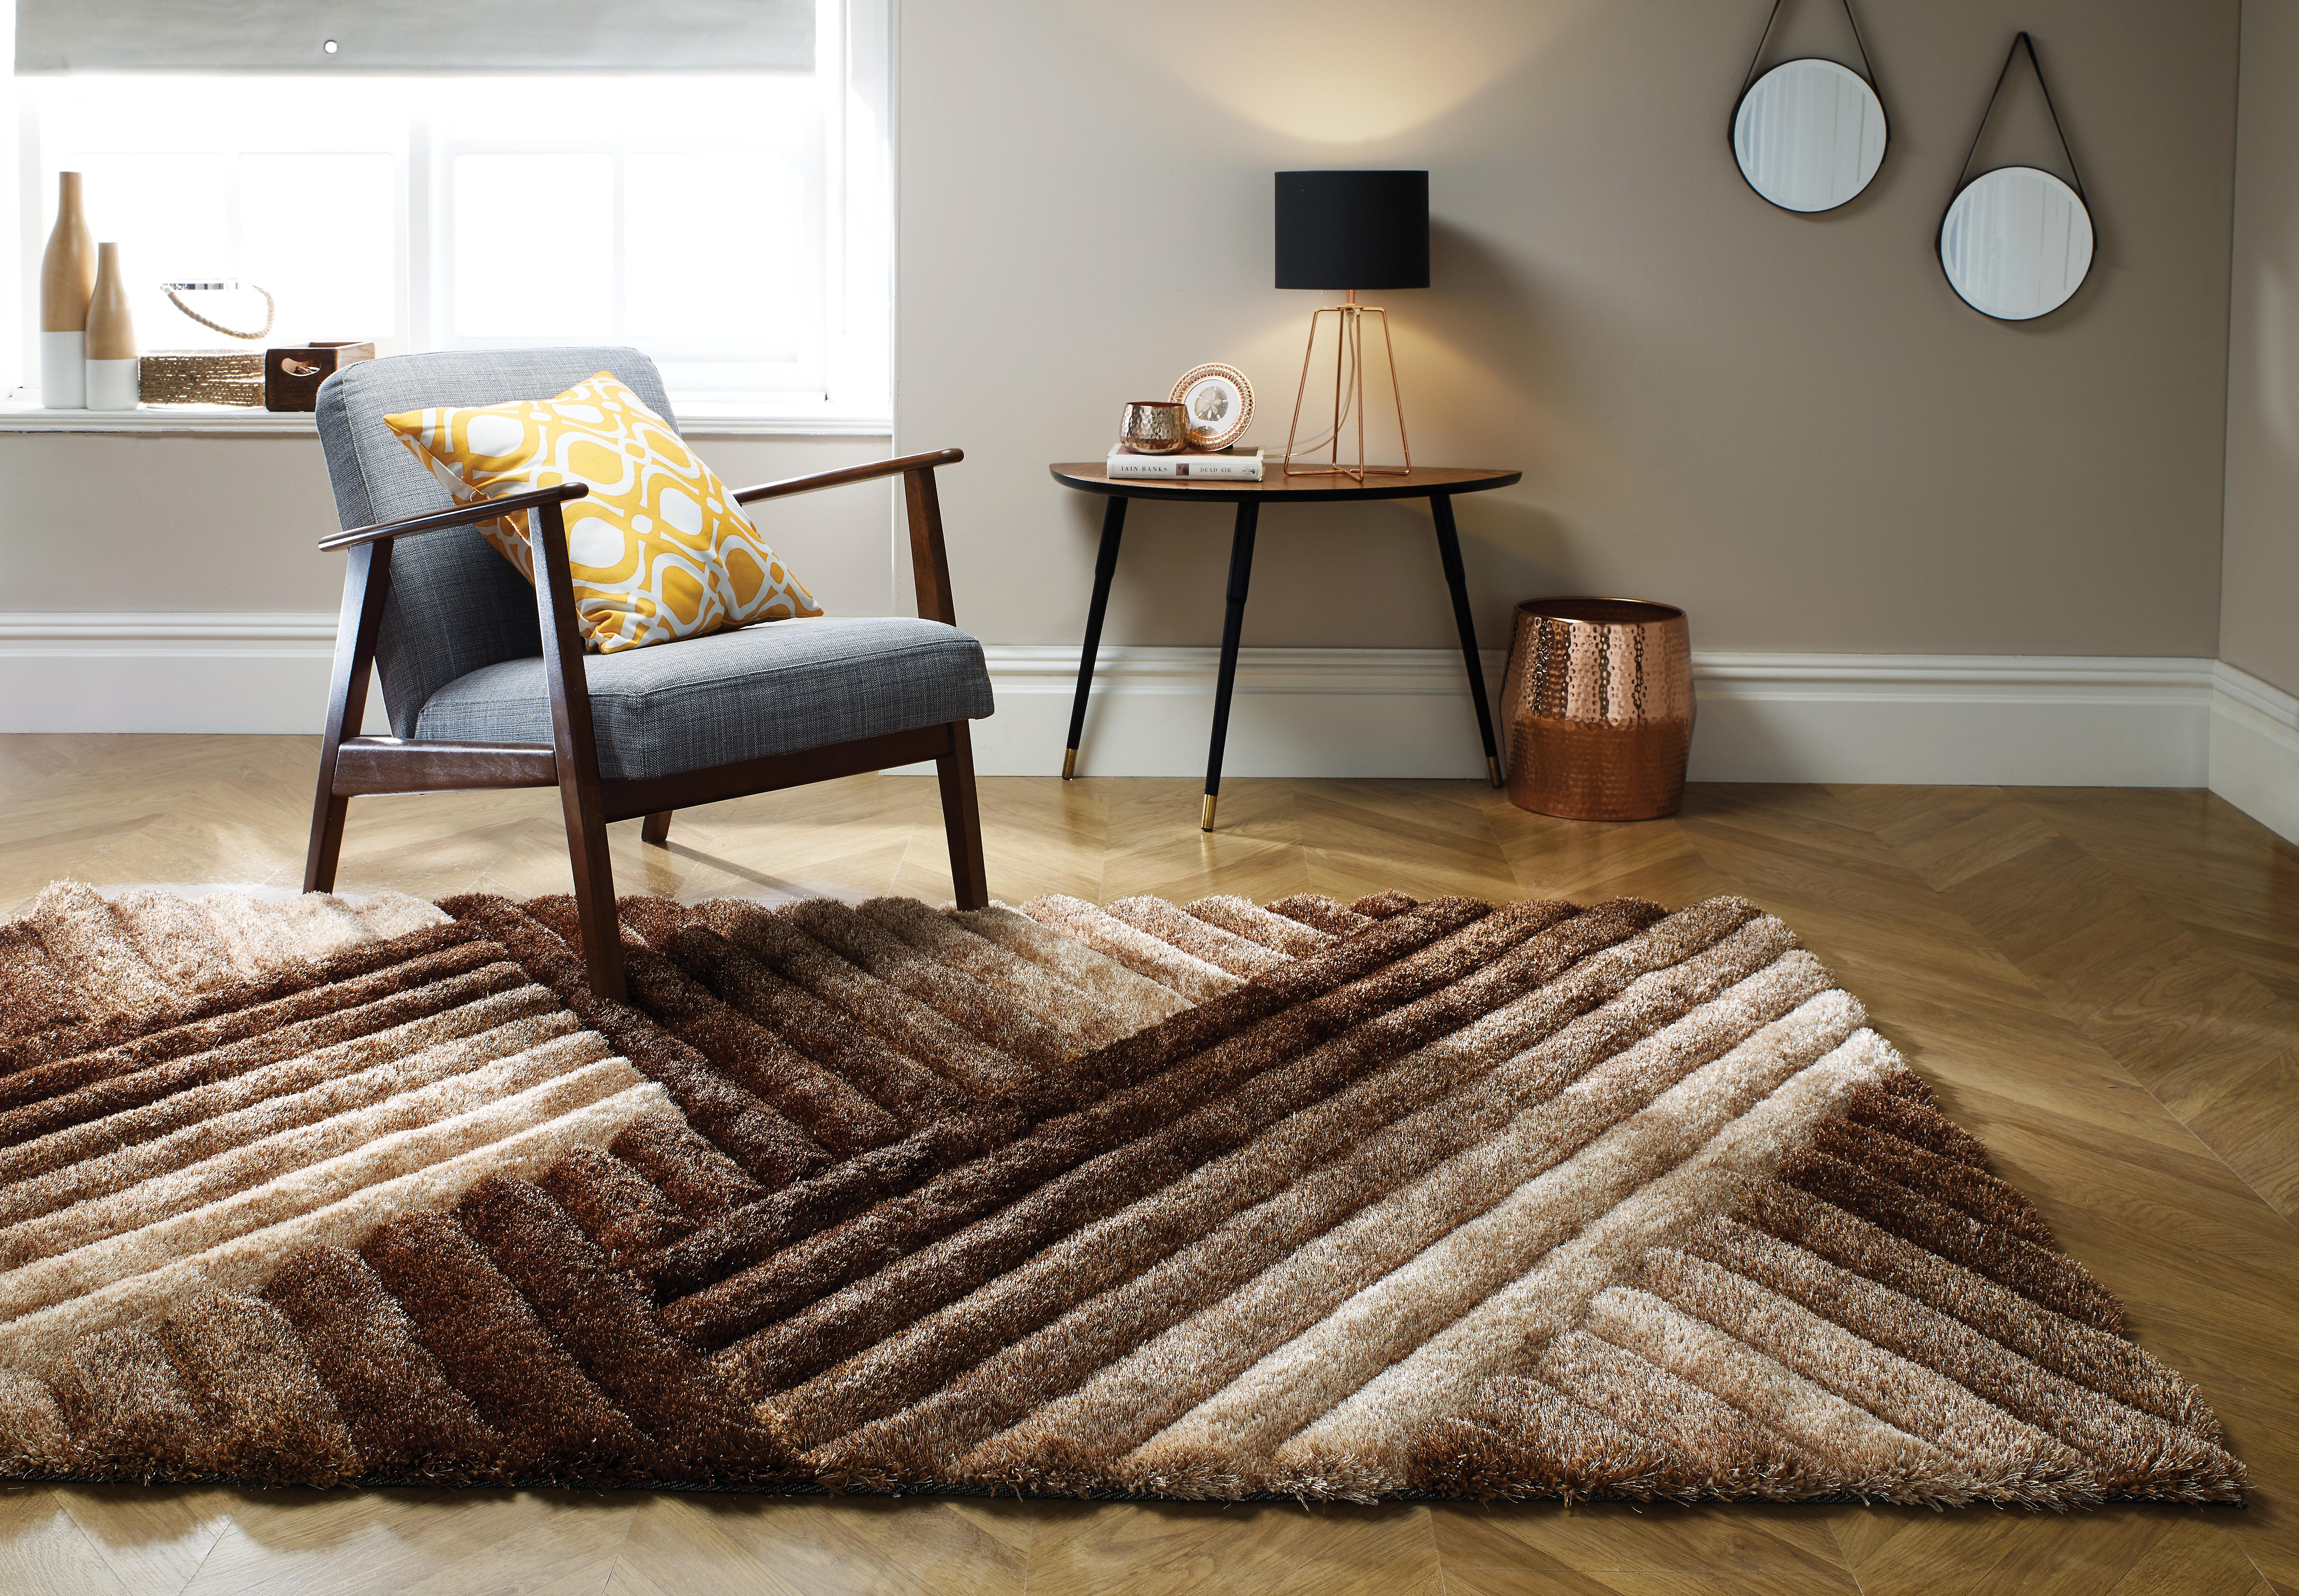 The Home Furnishings Company Verge Lattice Brown/Bronze Rug 80x150cms